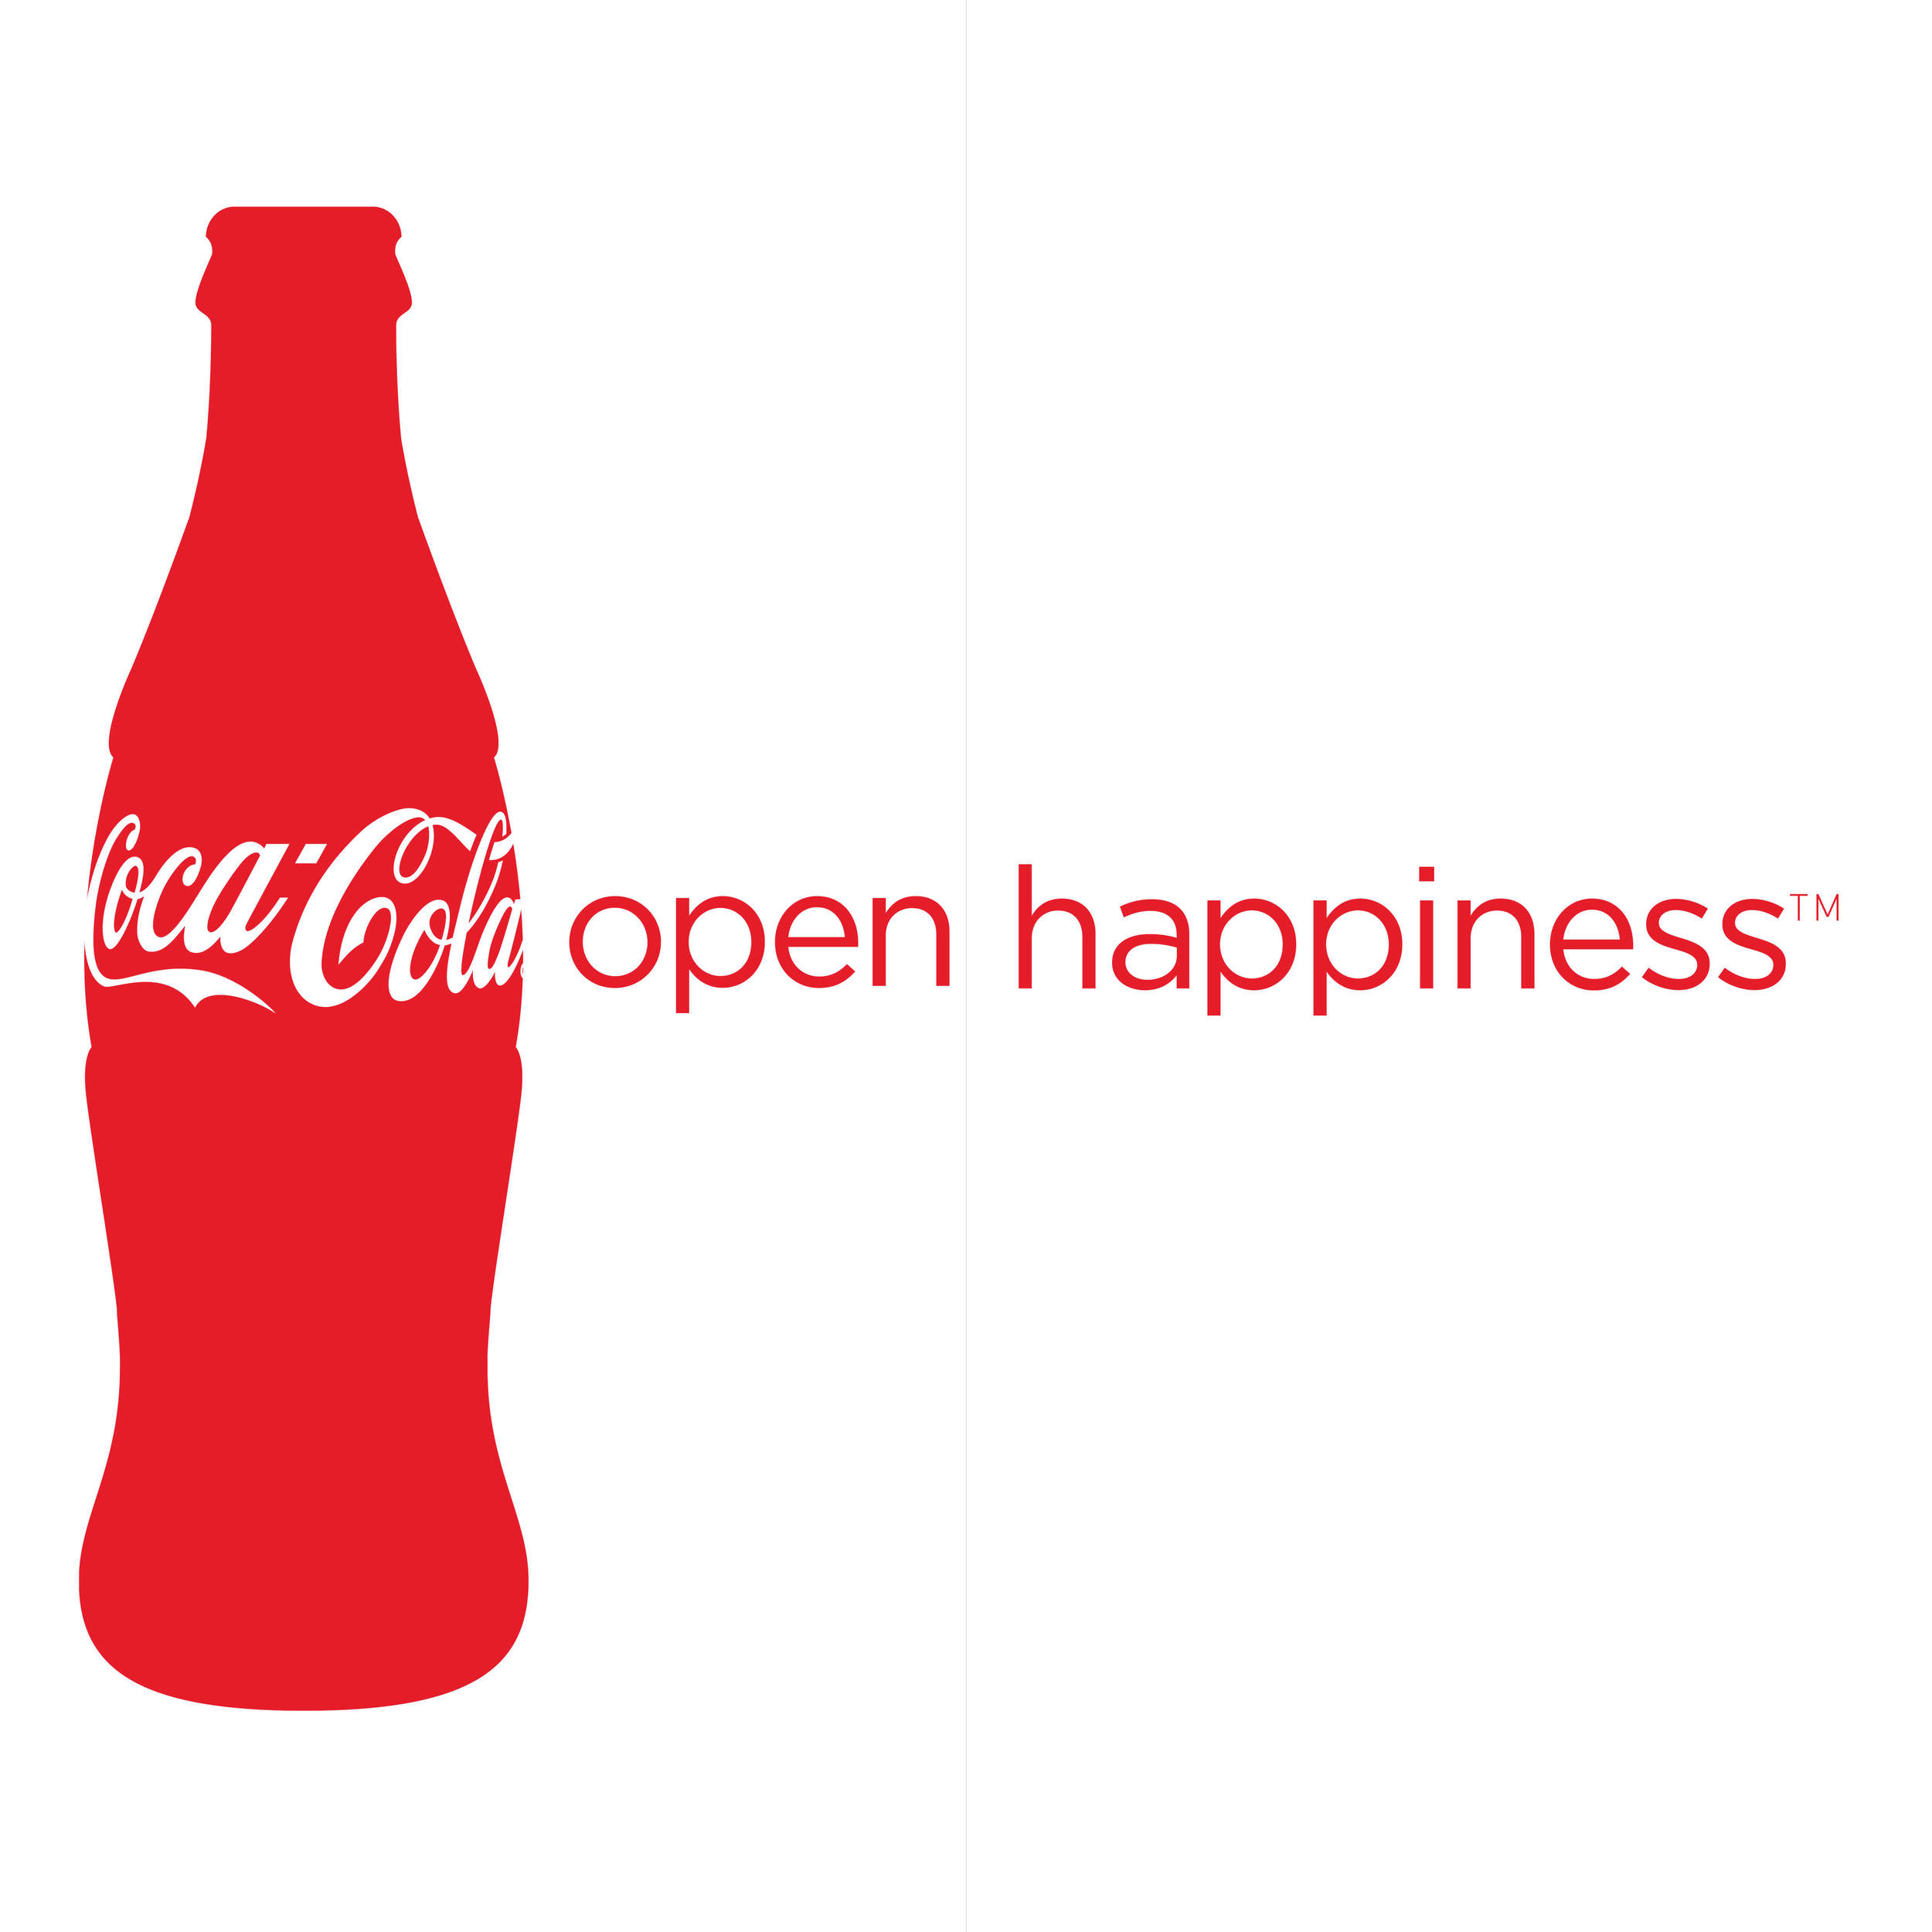 Image Taken From Coca-Cola